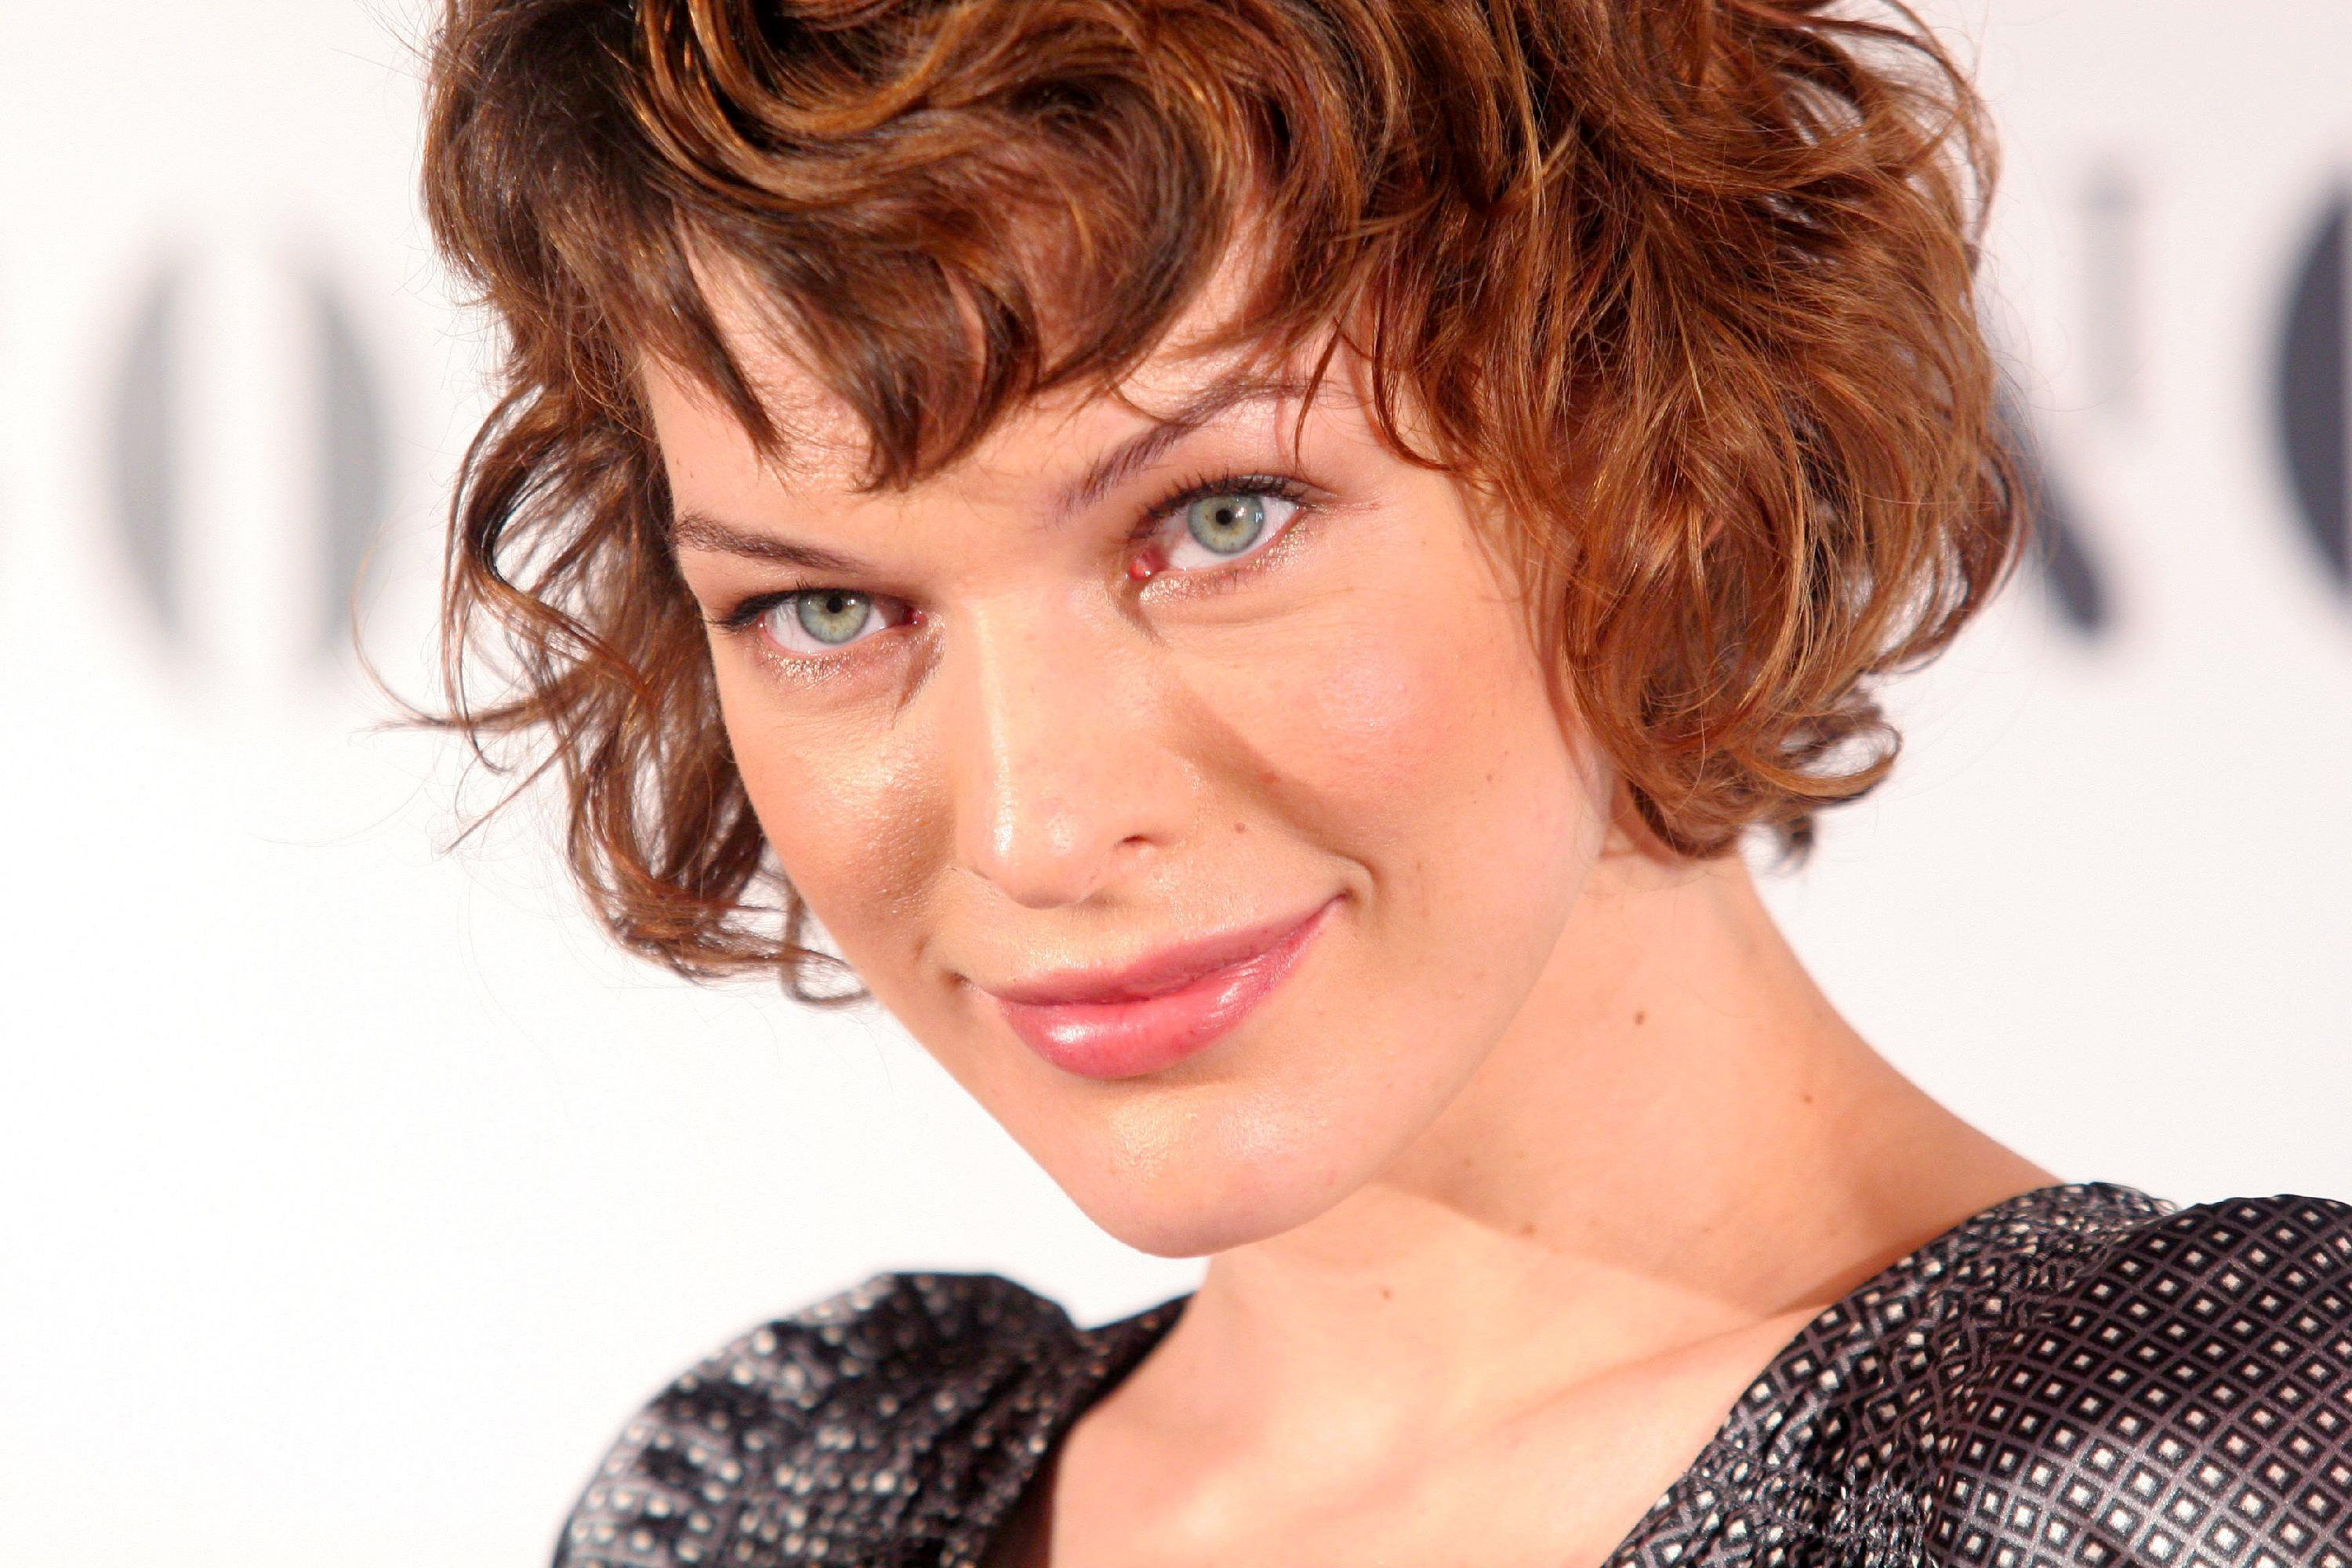 Milla Jovovich HD Wallpapers, Pictures, Images милла йовович